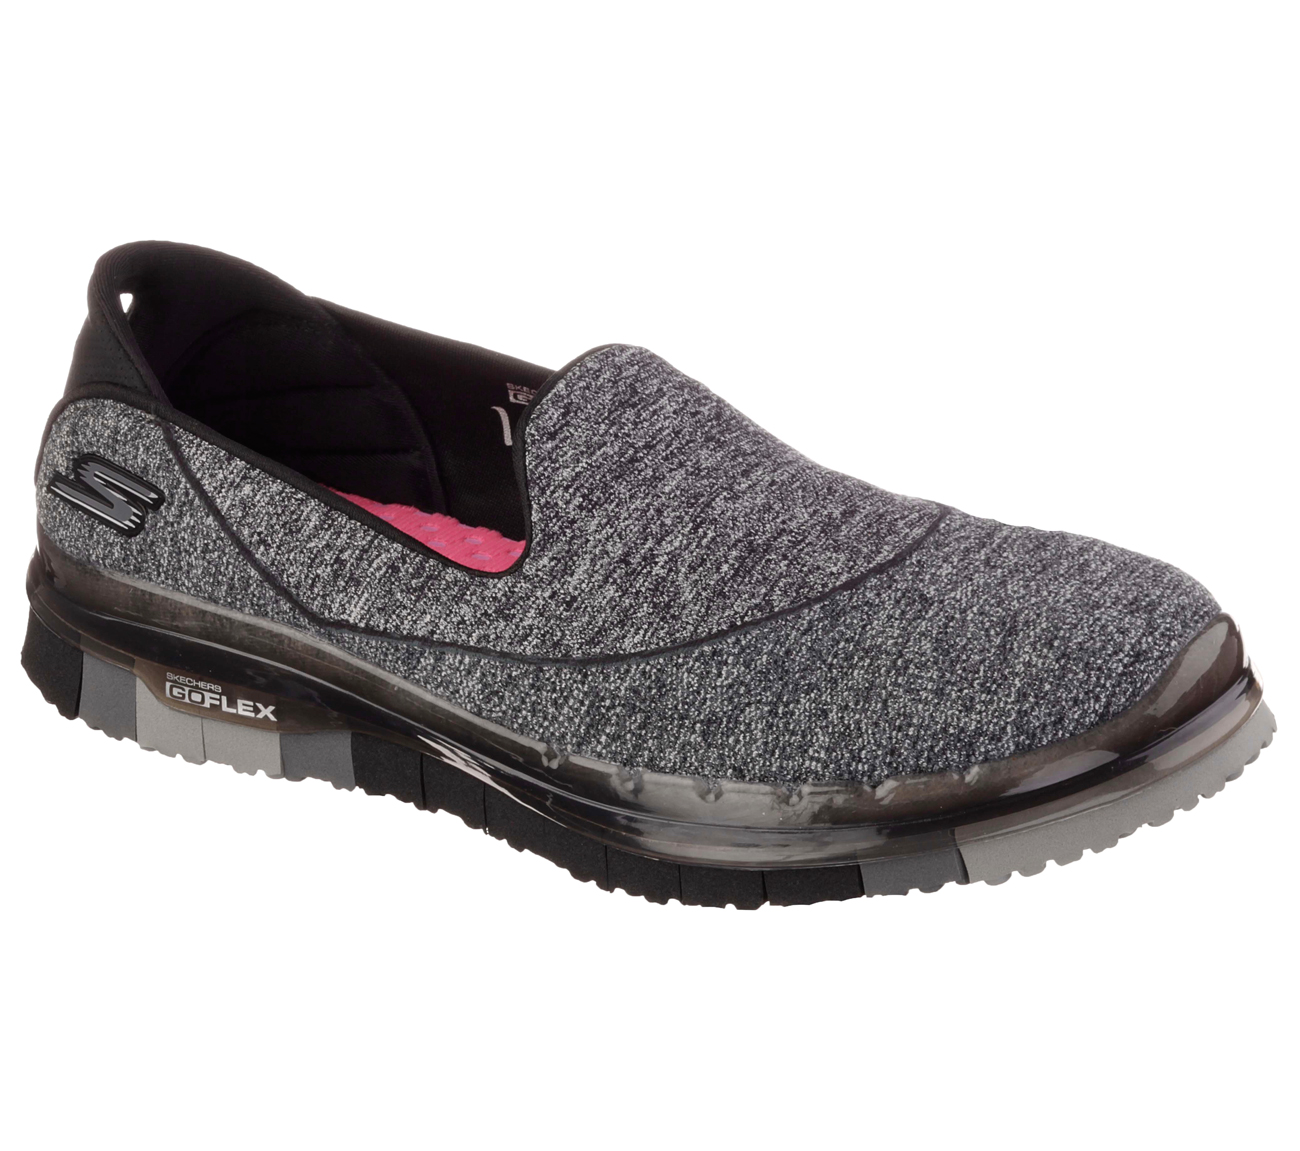 Skechers On The Go Men S Shoes